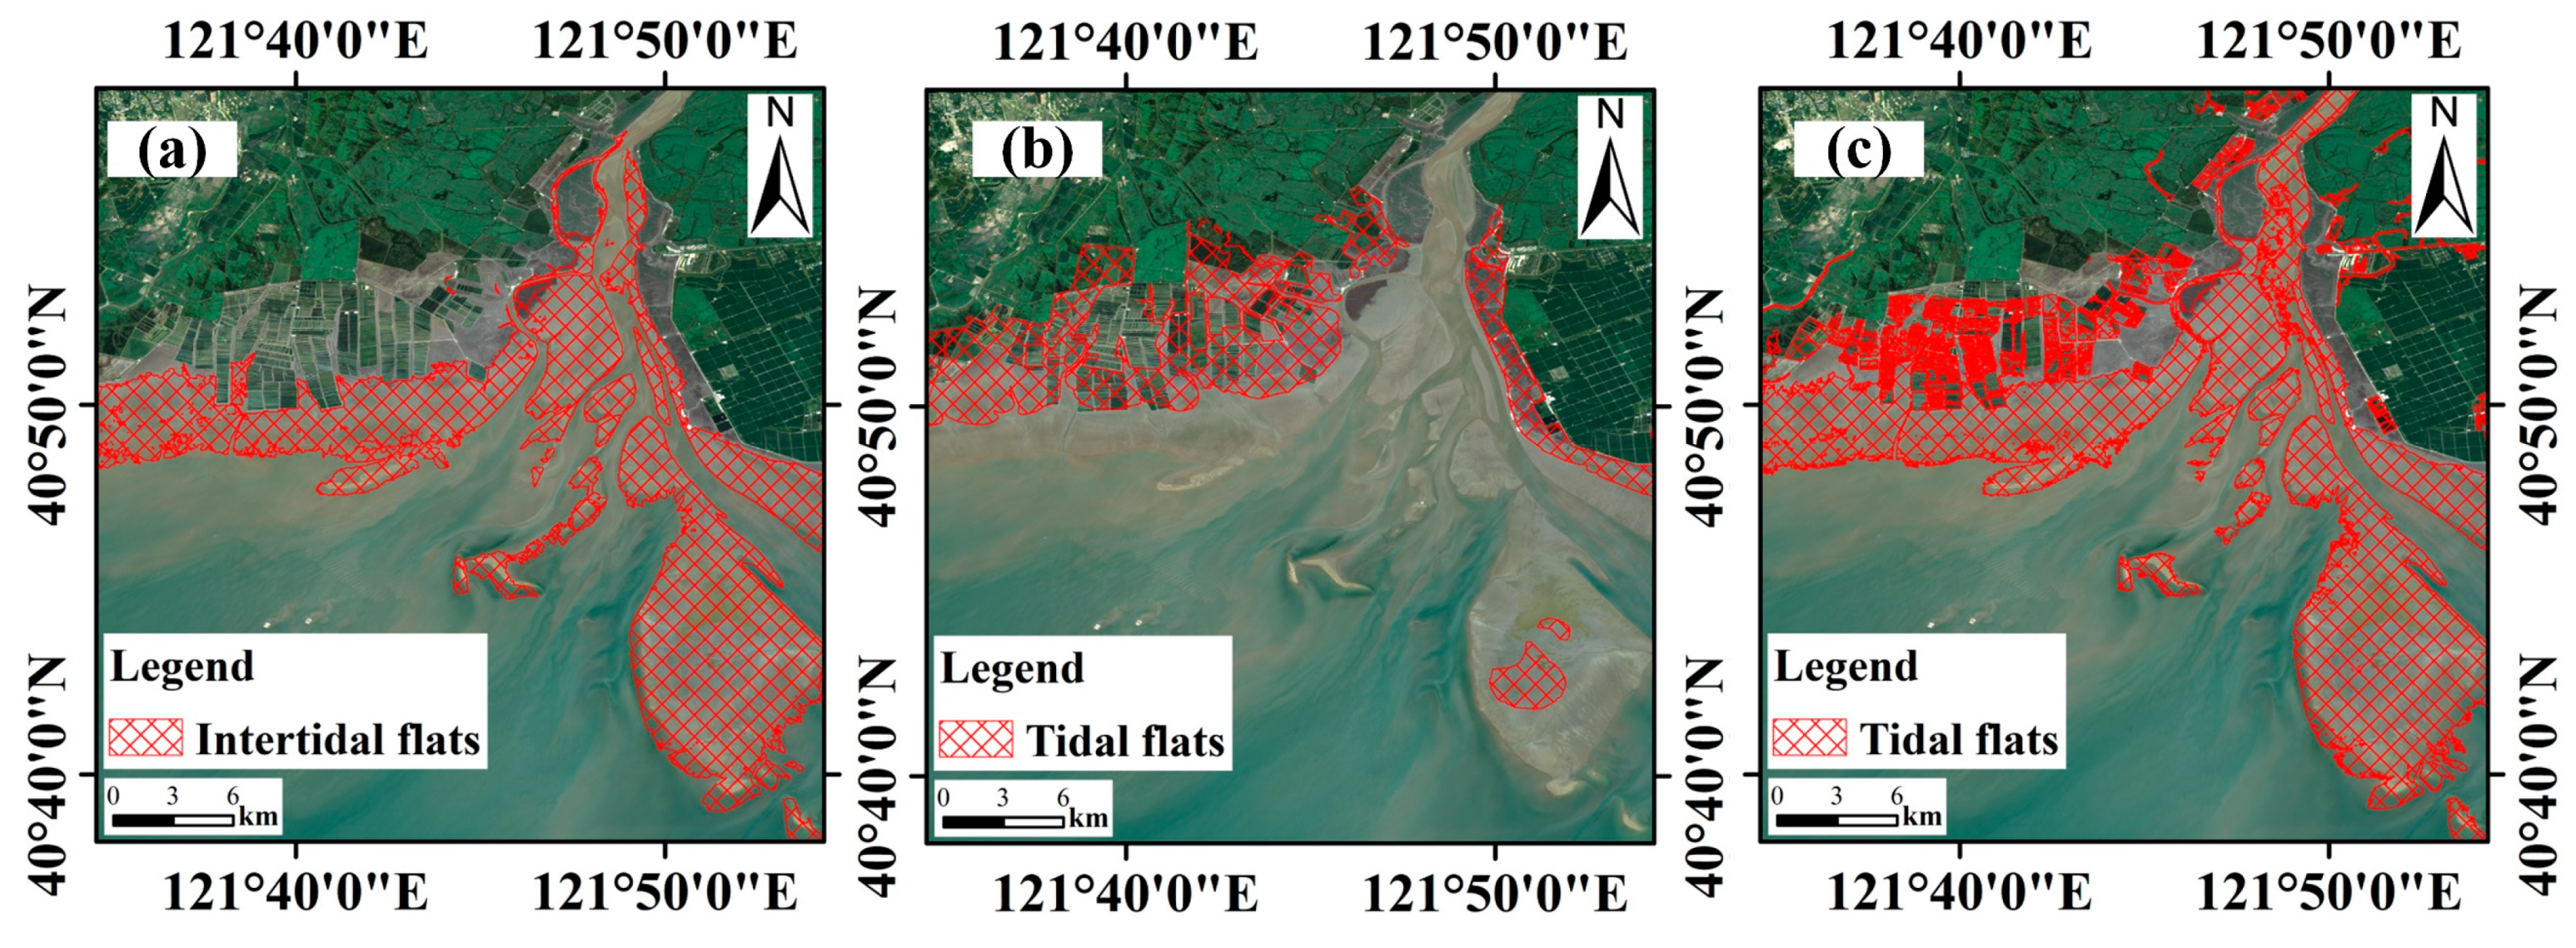 Remote Sensing | Free Full-Text | Mapping Tidal Flats with Landsat 8